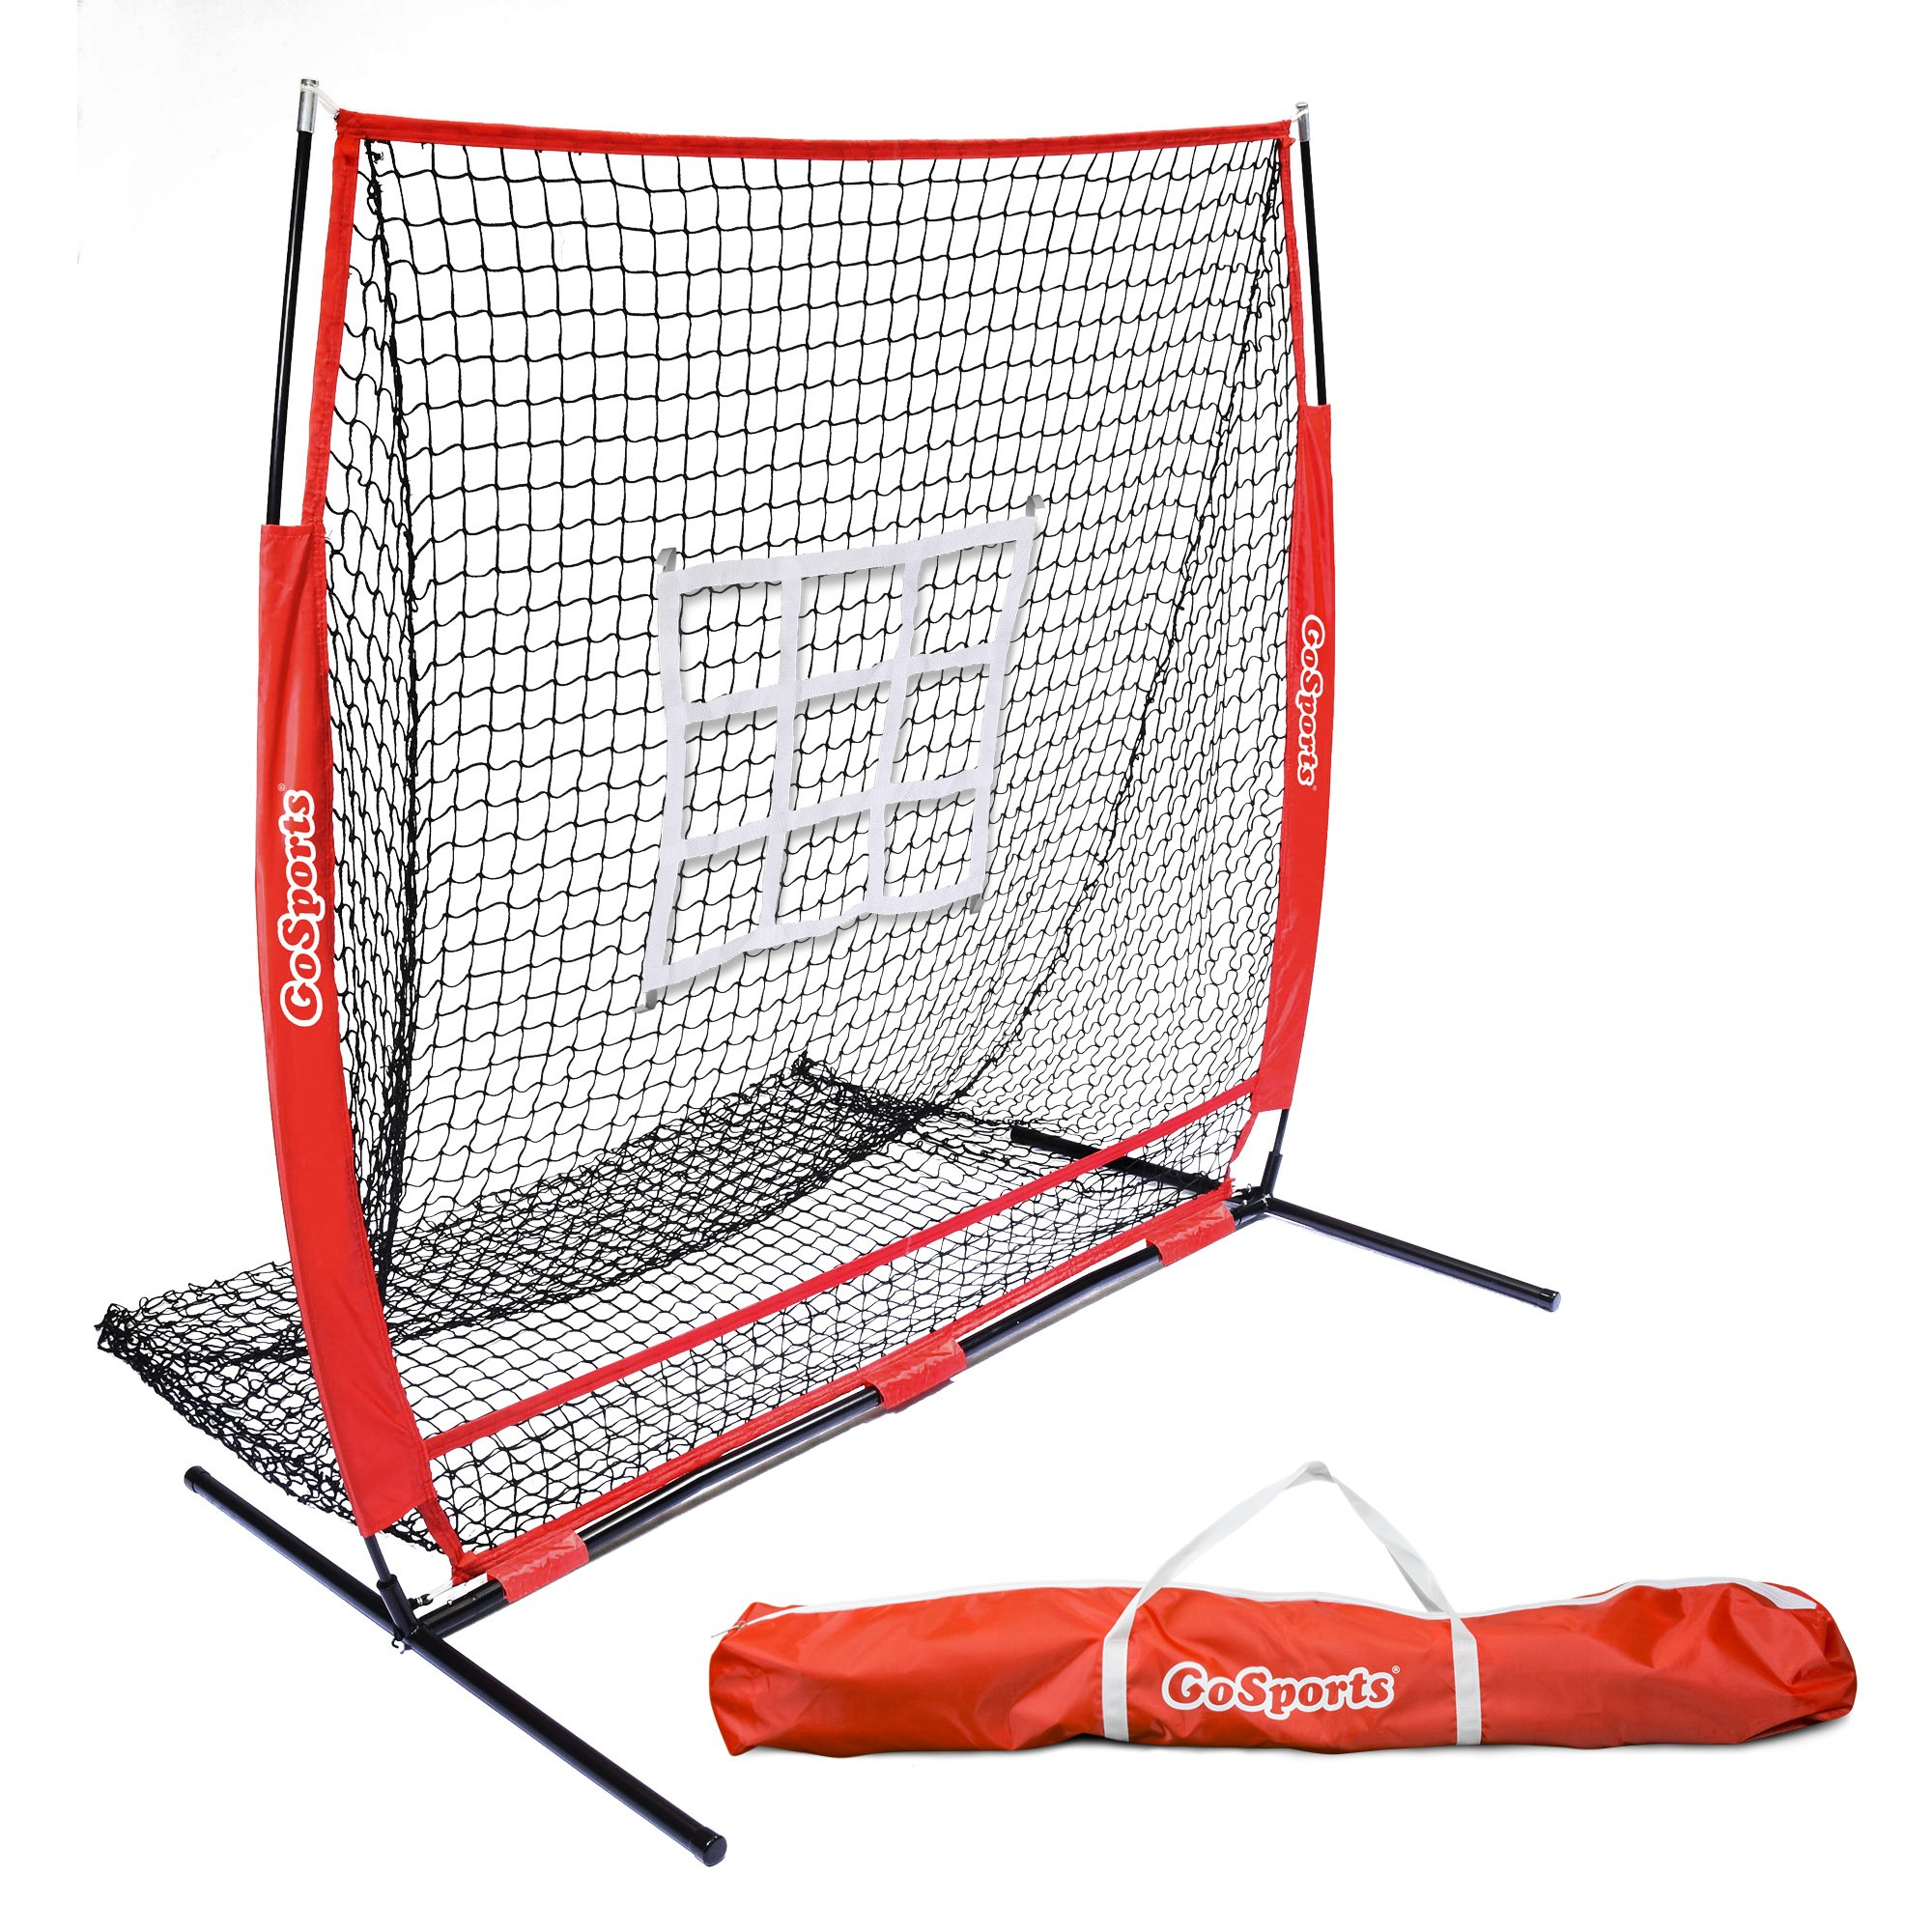 GoSports 5'x5' Baseball & Softball Practice Pitching & Fielding Net with Bow Frame, Carry Bag and Bonus Strike Zone, Great for all Skill Levels